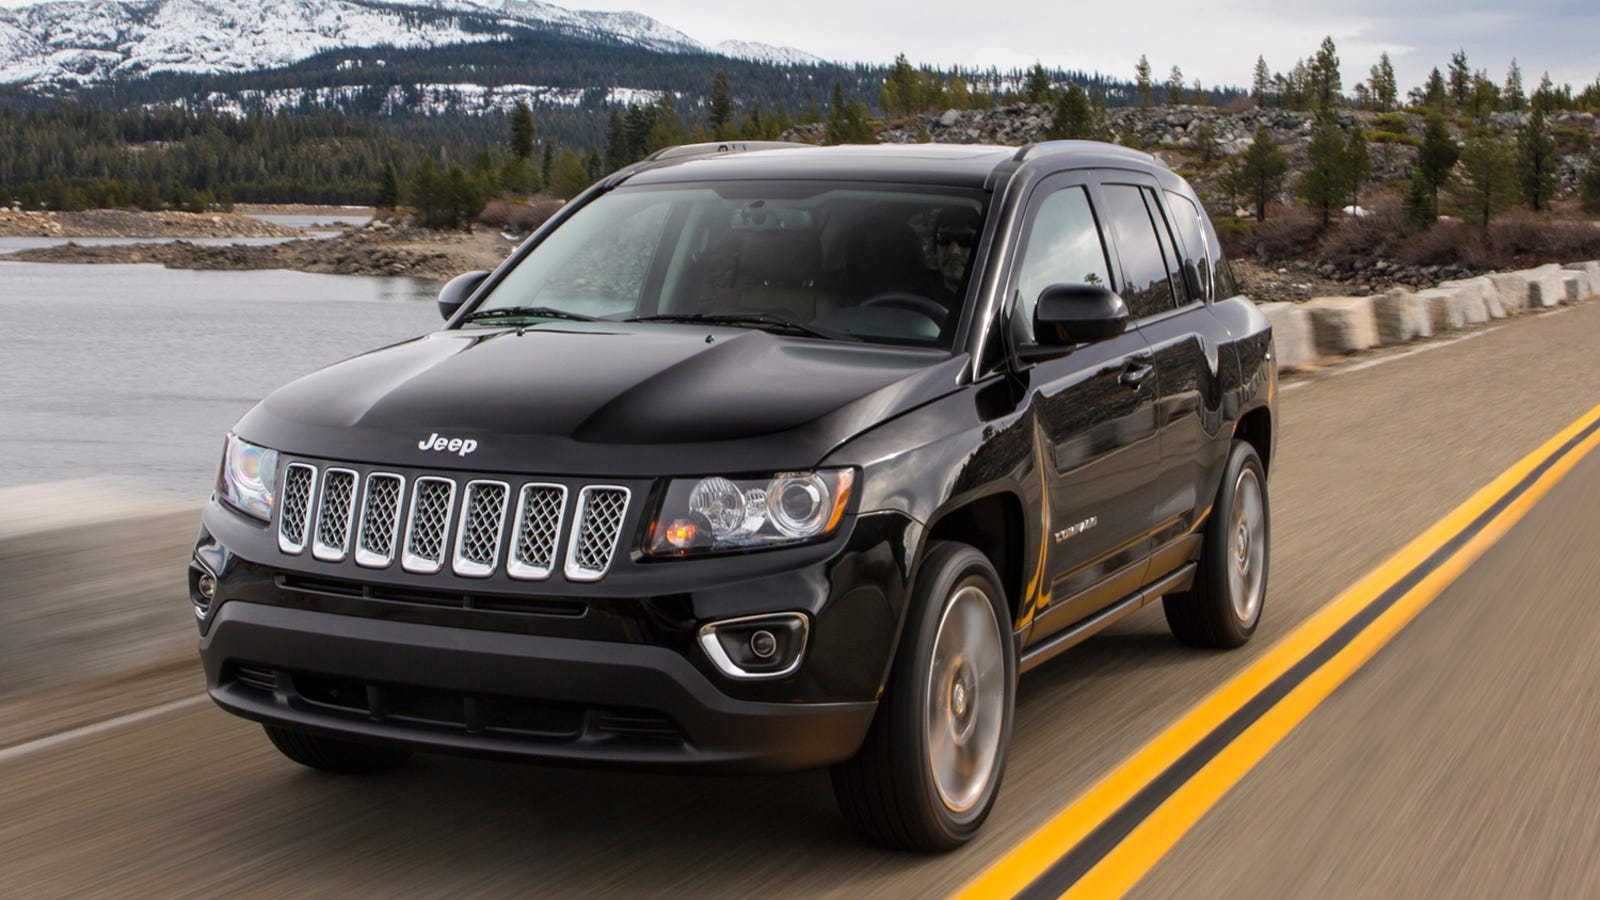 oppo reviews 2015 jeep compass. Black Bedroom Furniture Sets. Home Design Ideas